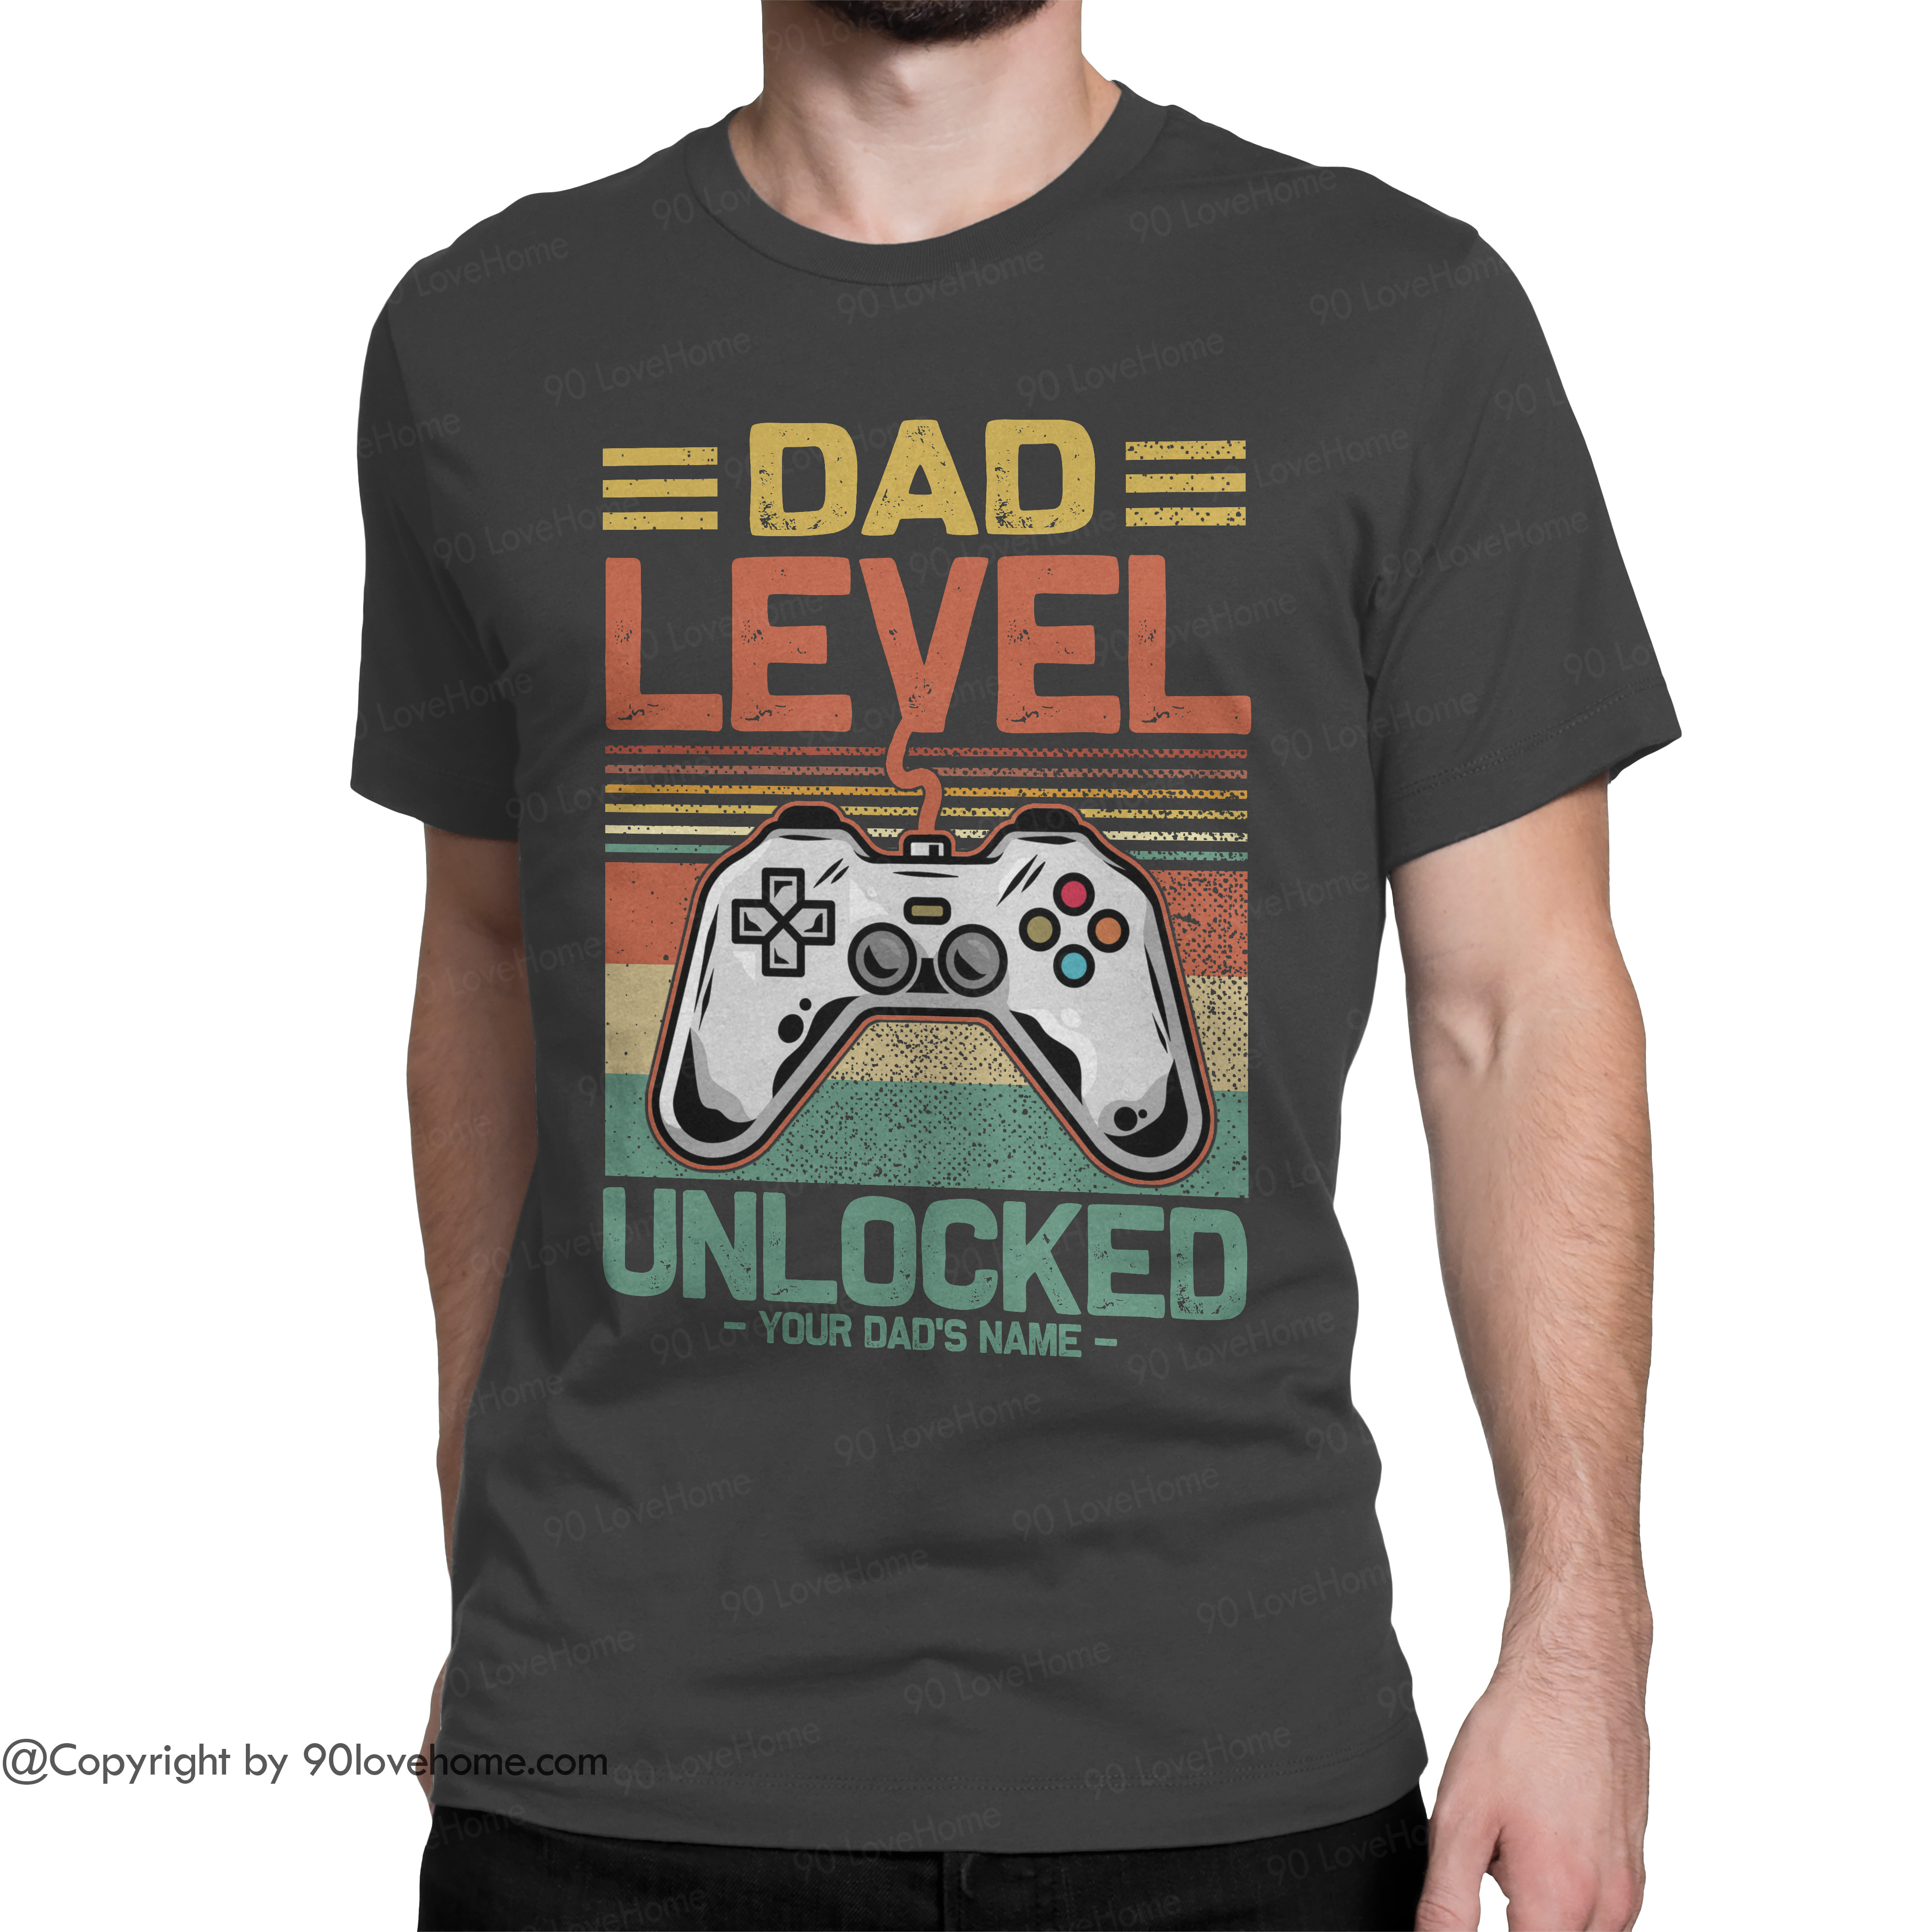 Personalized Dad Level Unlocked Unisex T-shirt Future Expecting Daddy Tee Father's Day Birthday Gift For Dad 90LoveHome